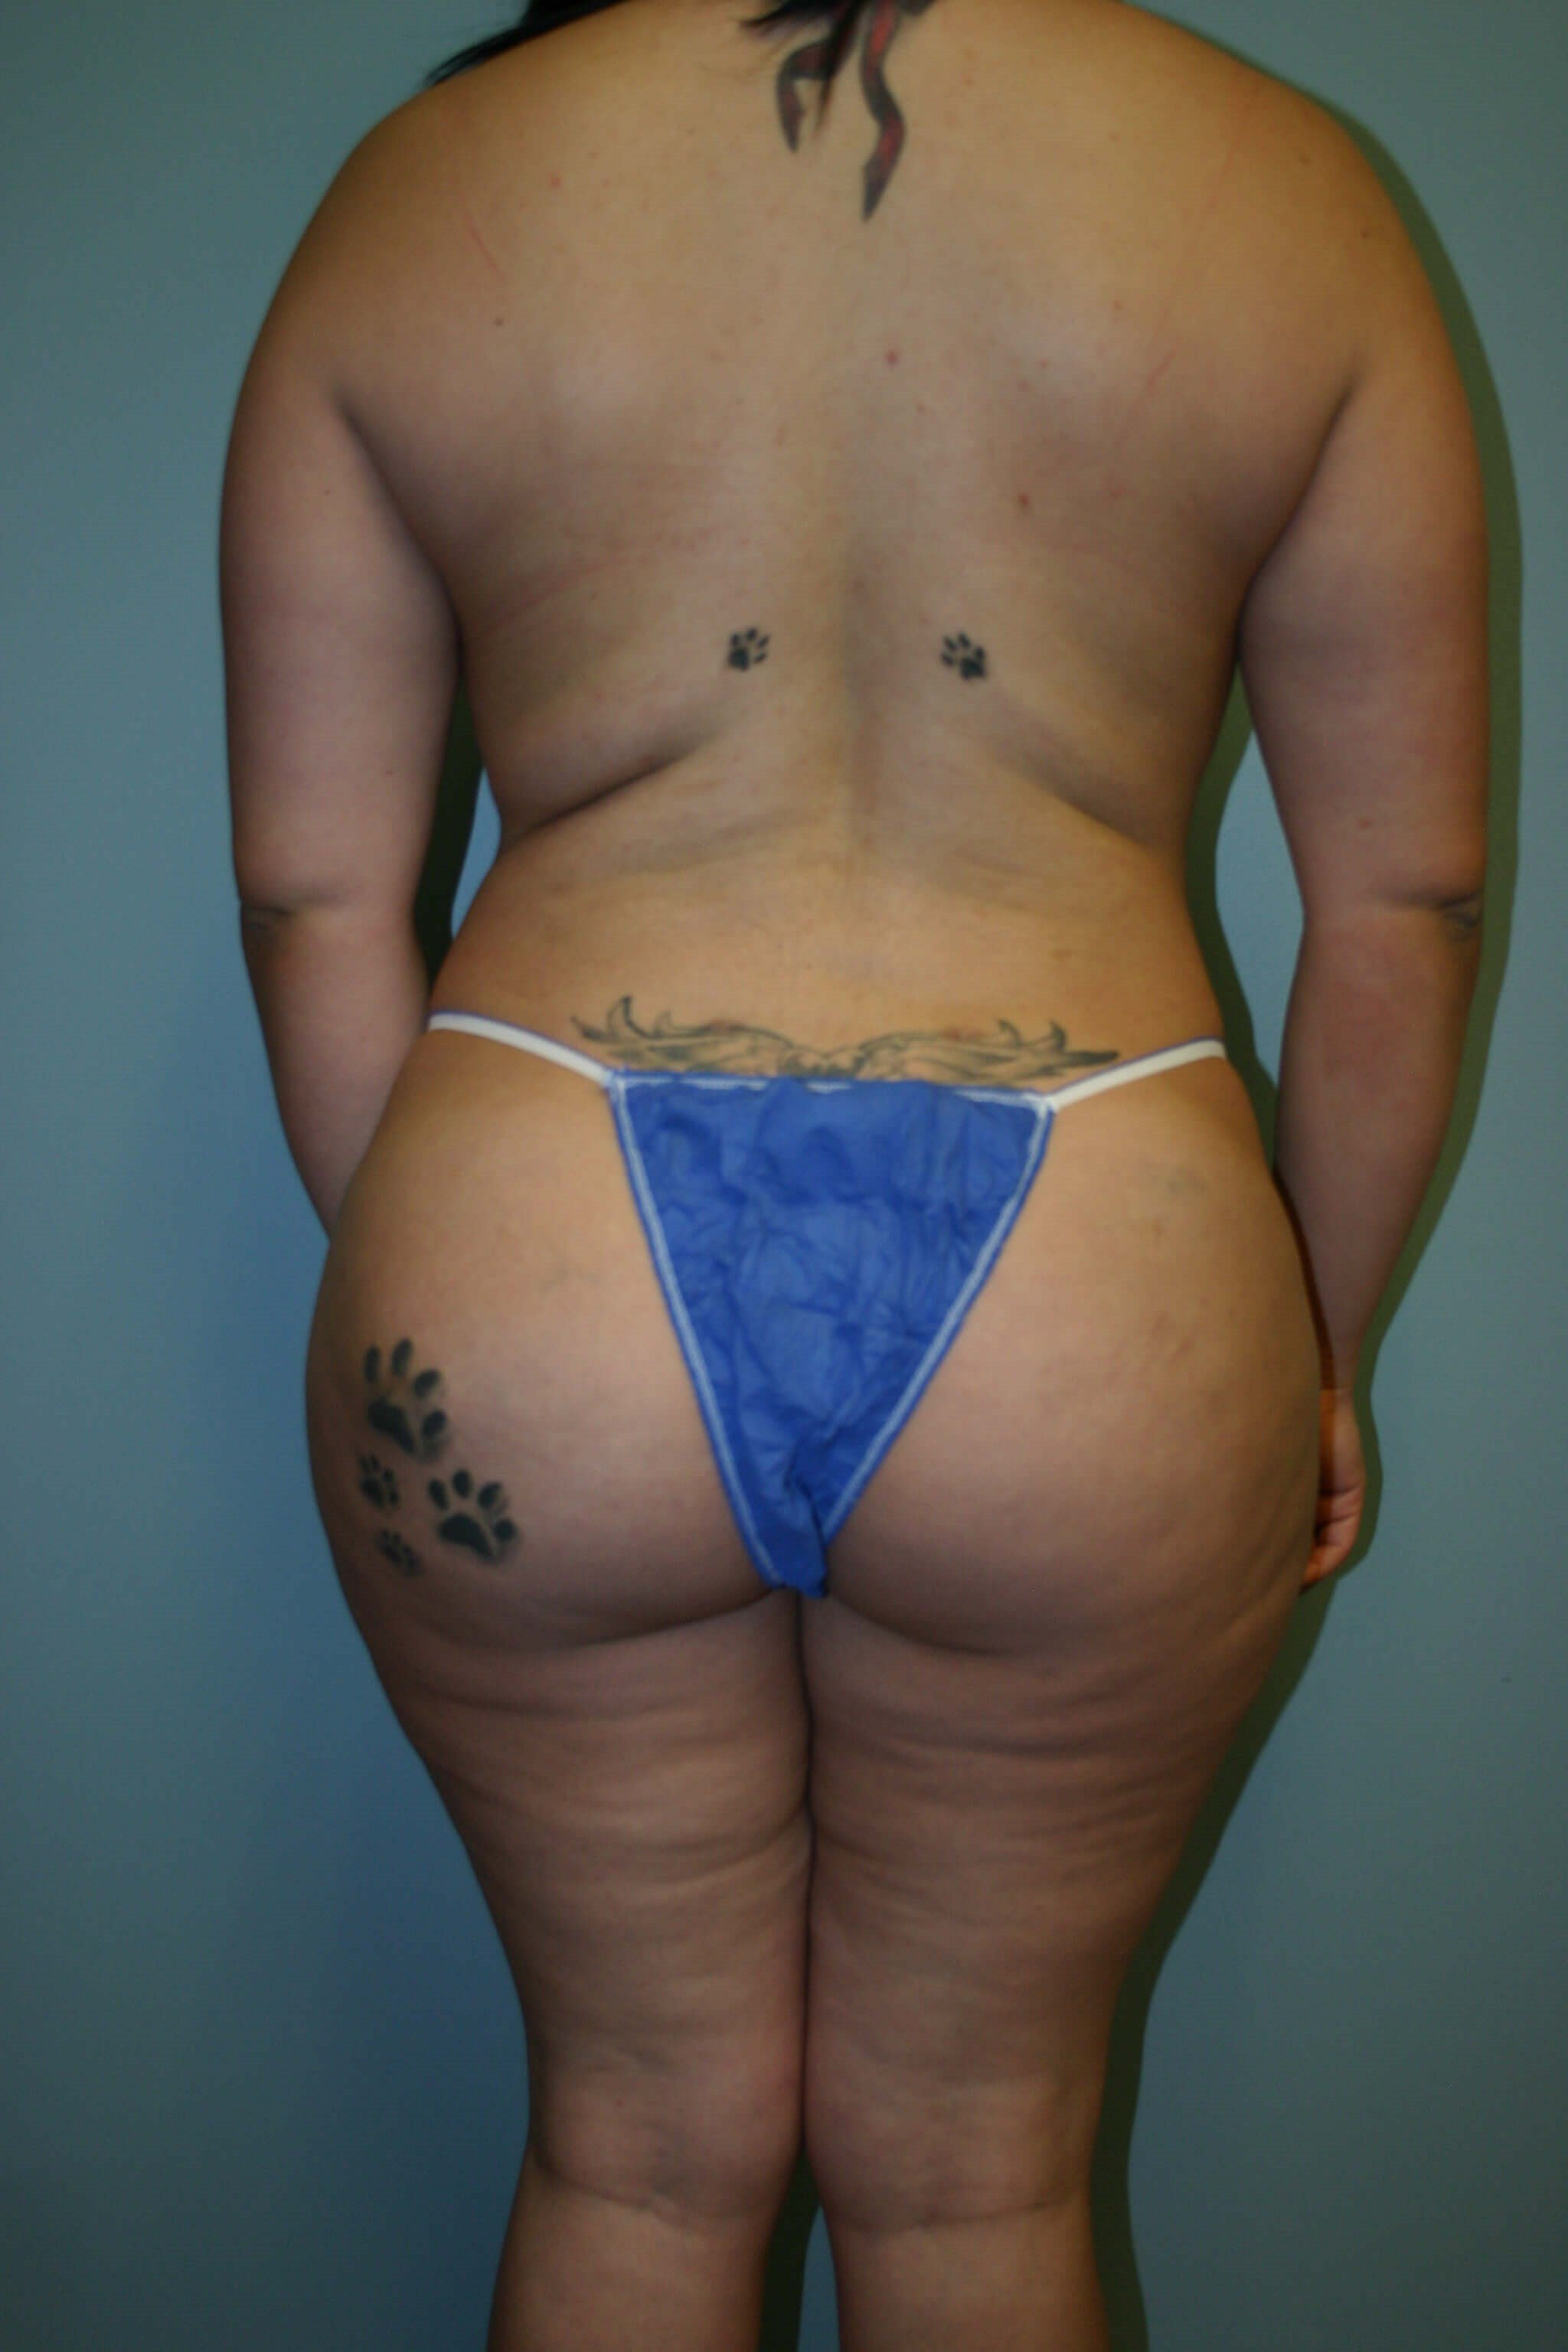 6 Months Post-op Butt Aug After